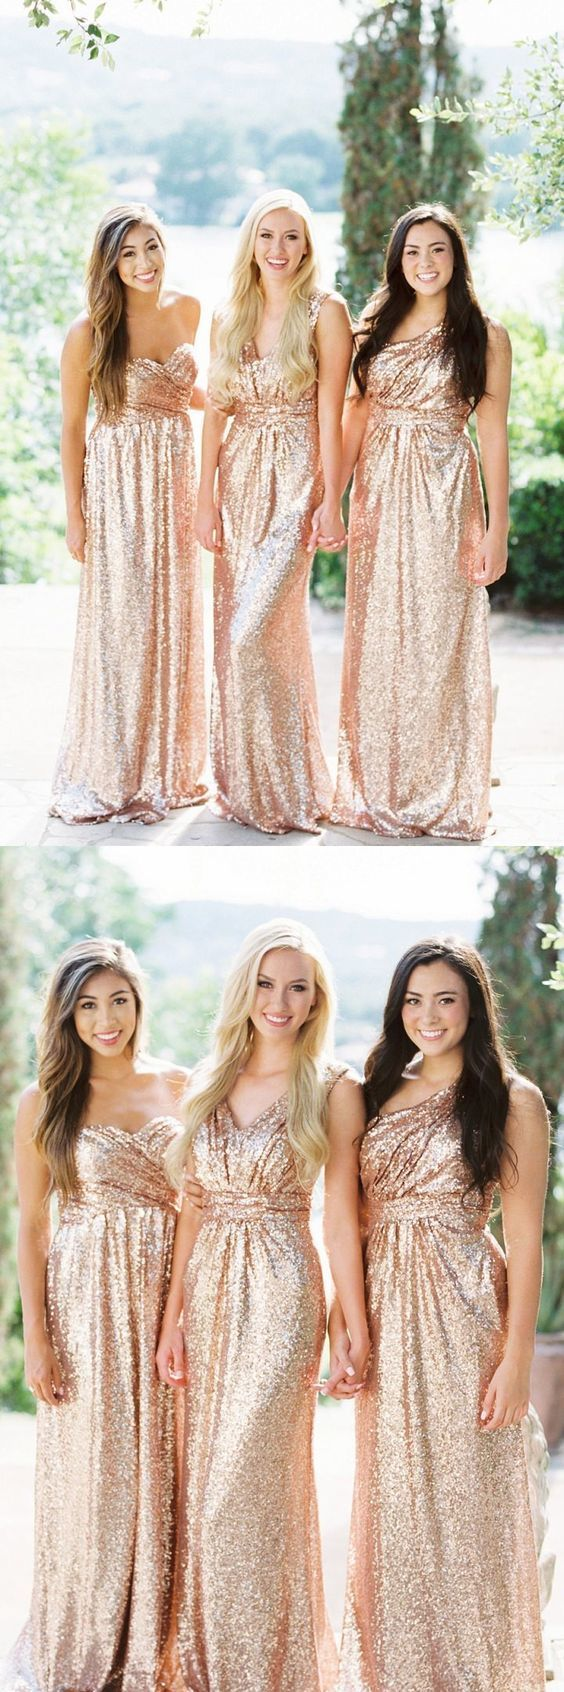 Sweetheart Rose Gold Bridesmaid Dress, Sparkly Sequin Bridesmaid Dress,